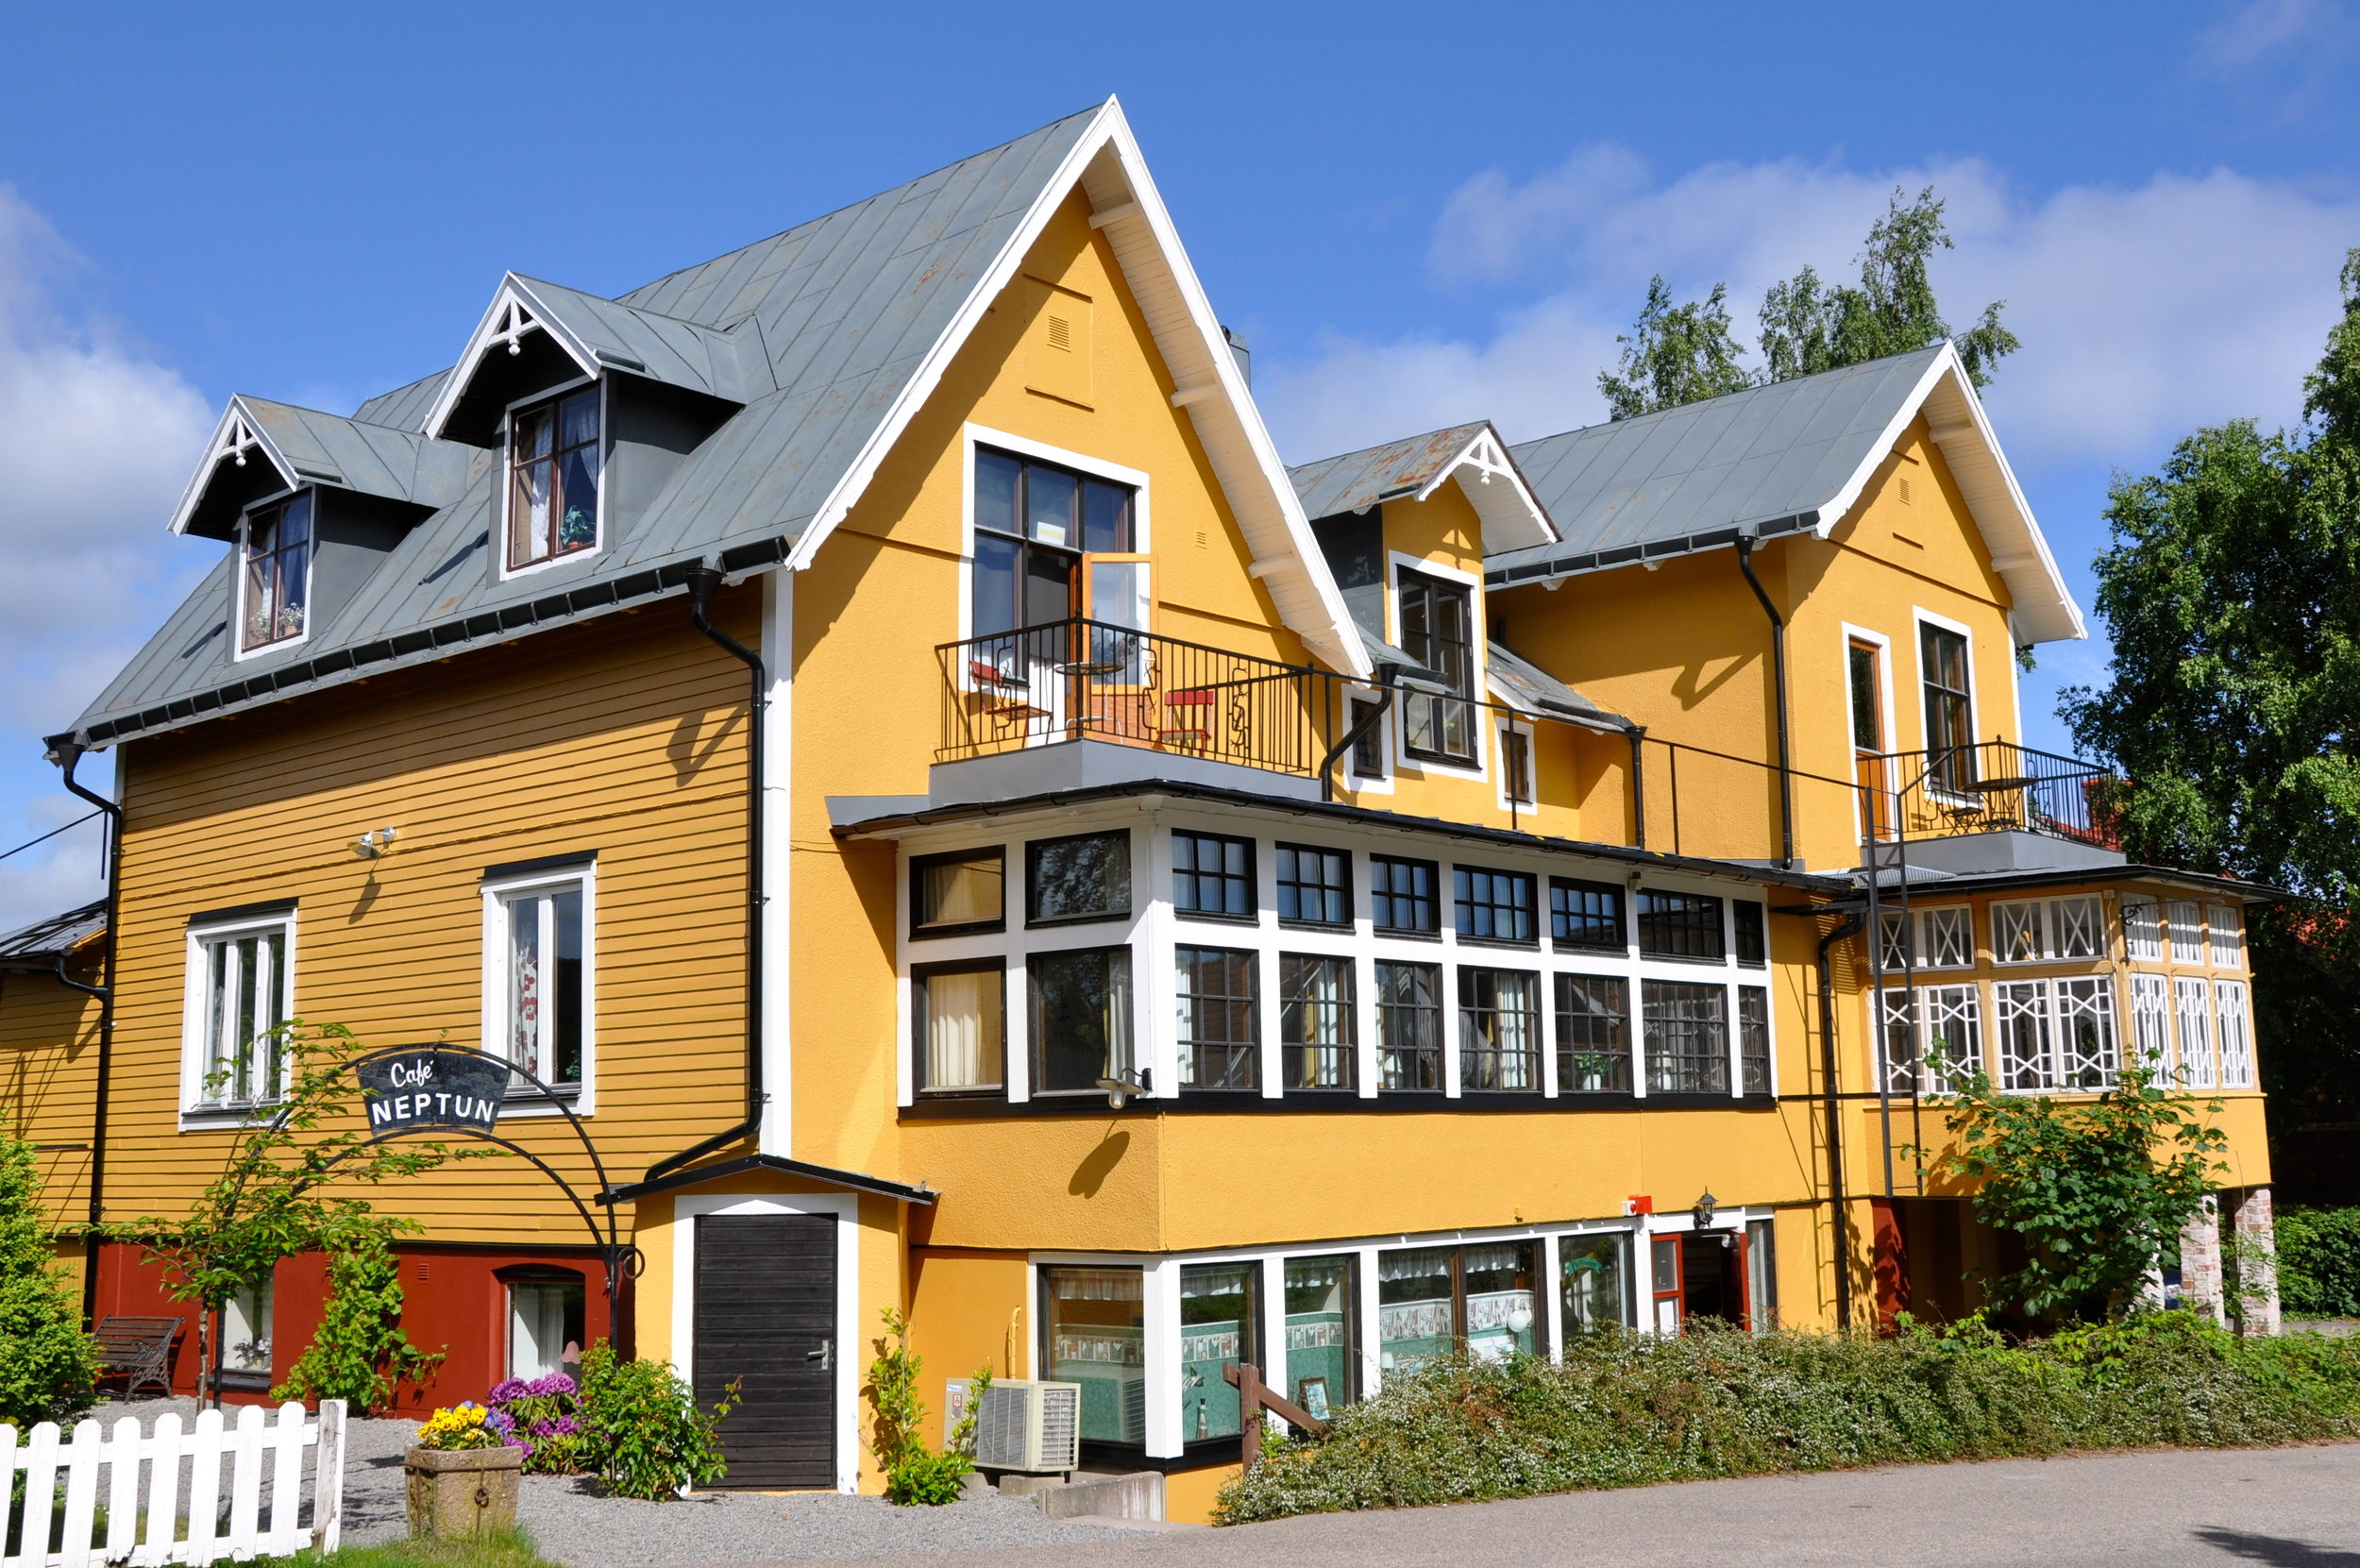 Pensionat Neptun - Pensionat Neptun provides charming accommodation with personality and character. Located only 300 m from Båstad Beach. During the summer, guests can relax in the garden and use the BBQ.25 minutes distance by car.